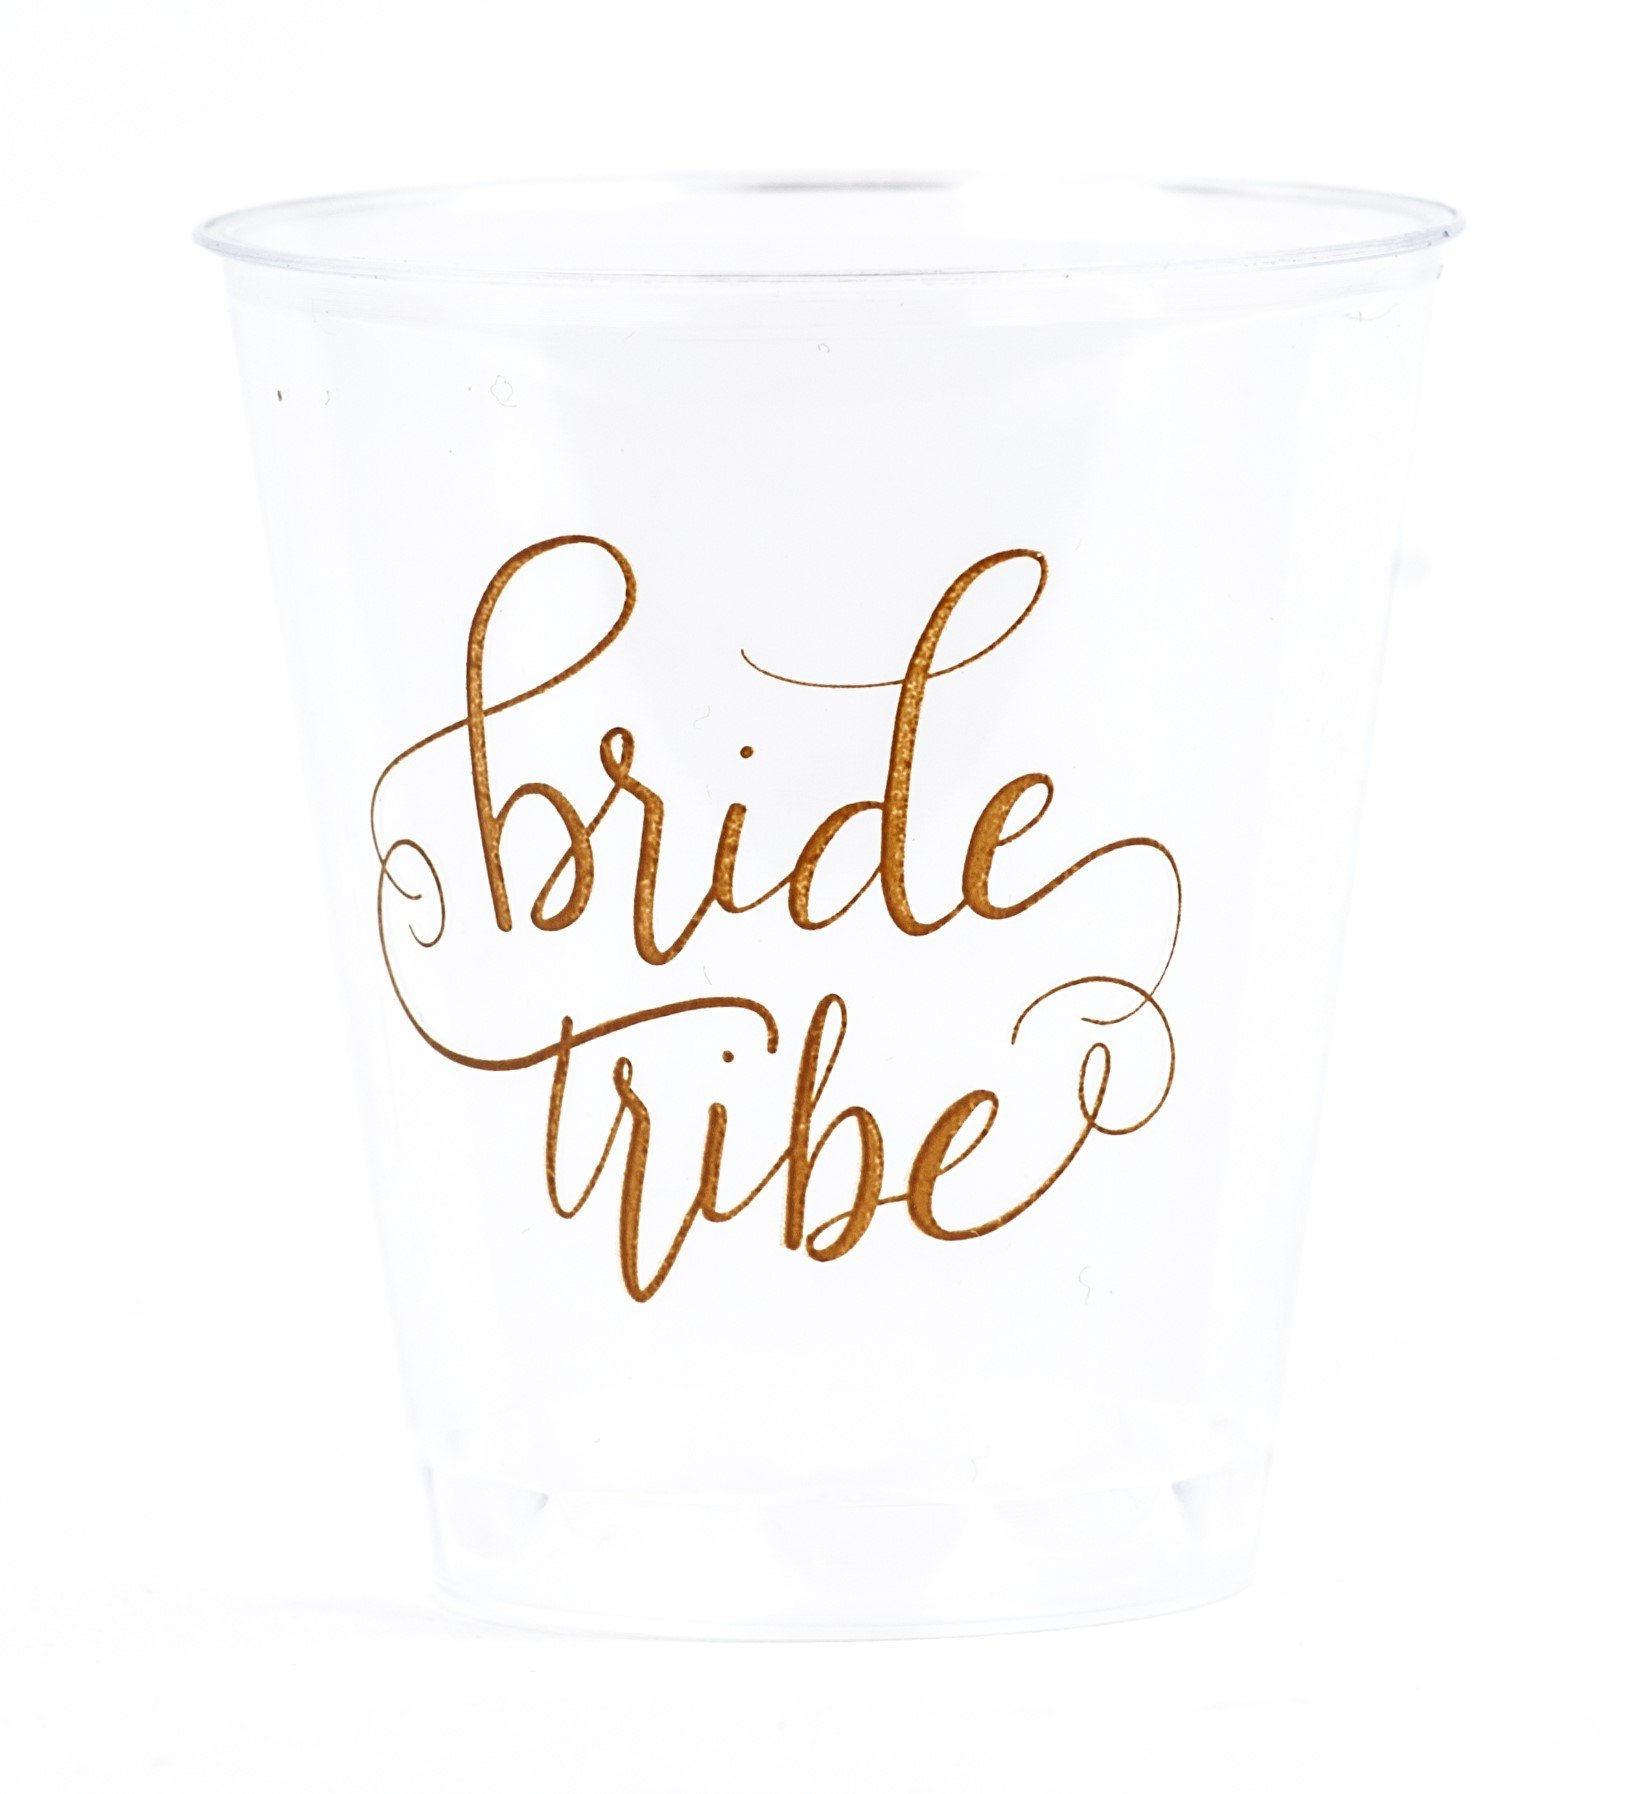 20 PIECE SET of Bride Tribe and Bride Durable Plastic 1.5 oz. Shot Glasses for Bachelorette Parties, Weddings and Bridal Showers - Clear by Samantha Margaret